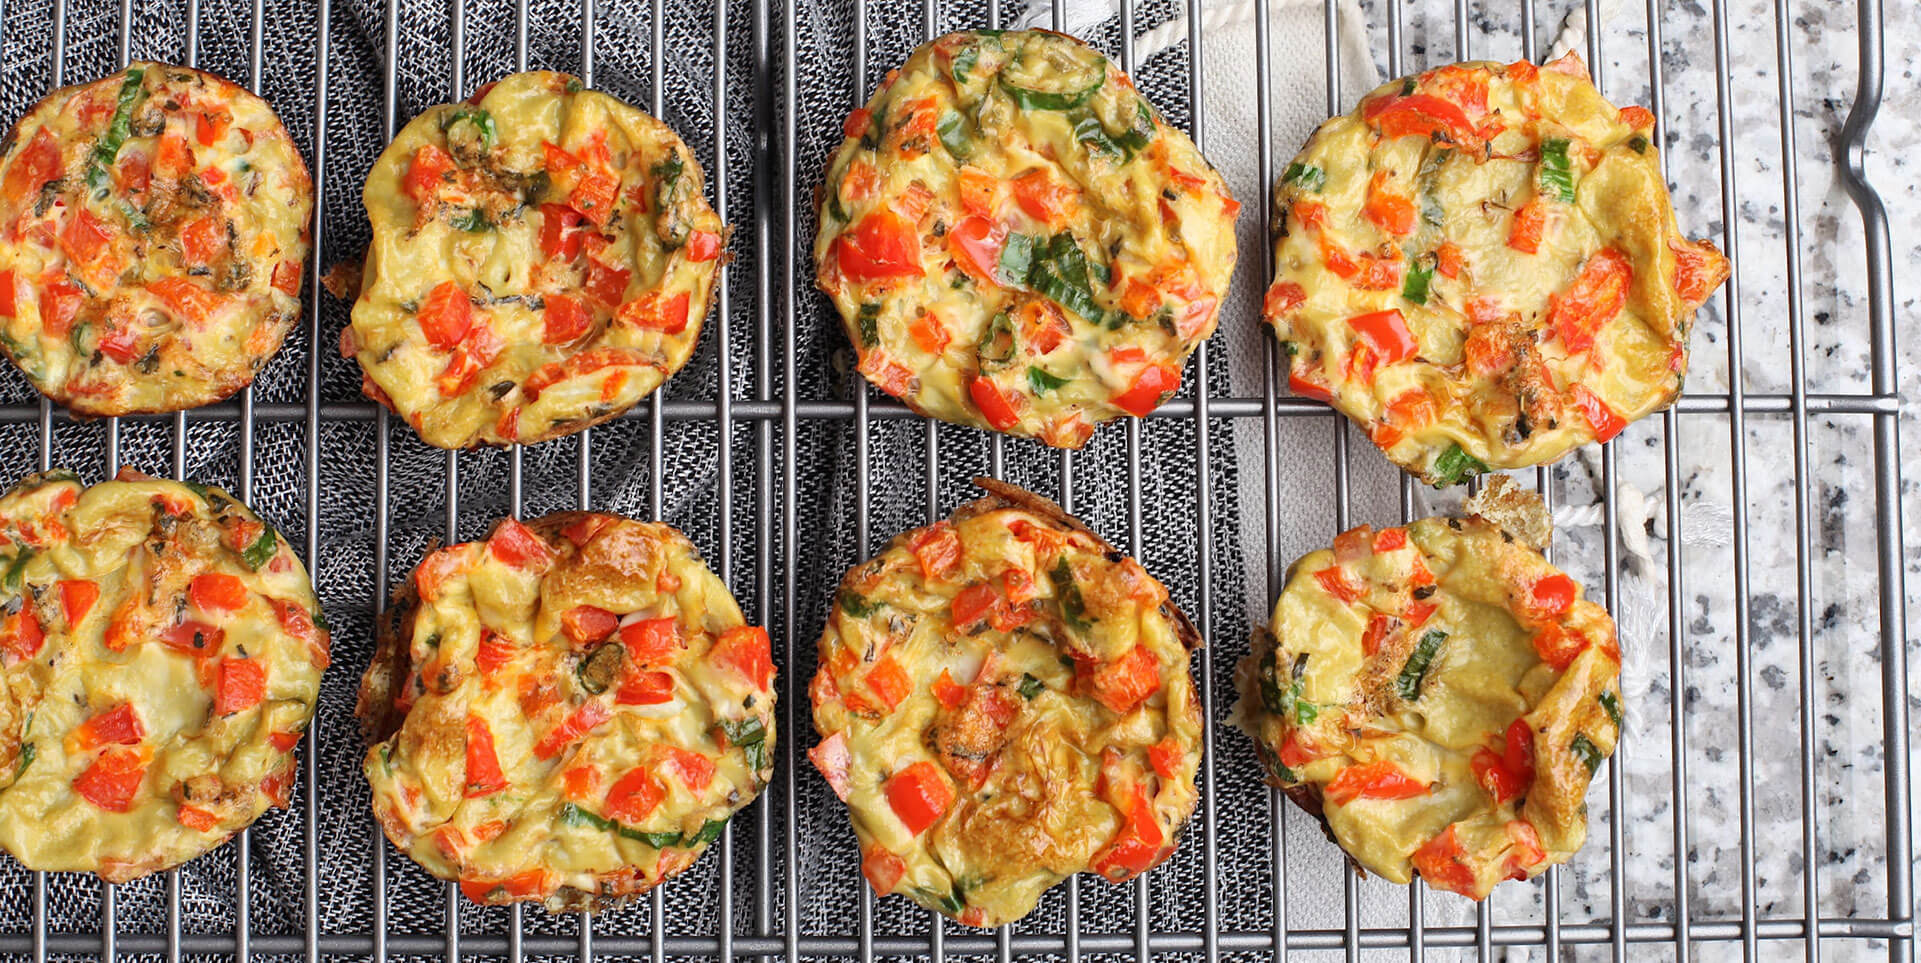 Eight fresh egg muffins cooling on metal tray